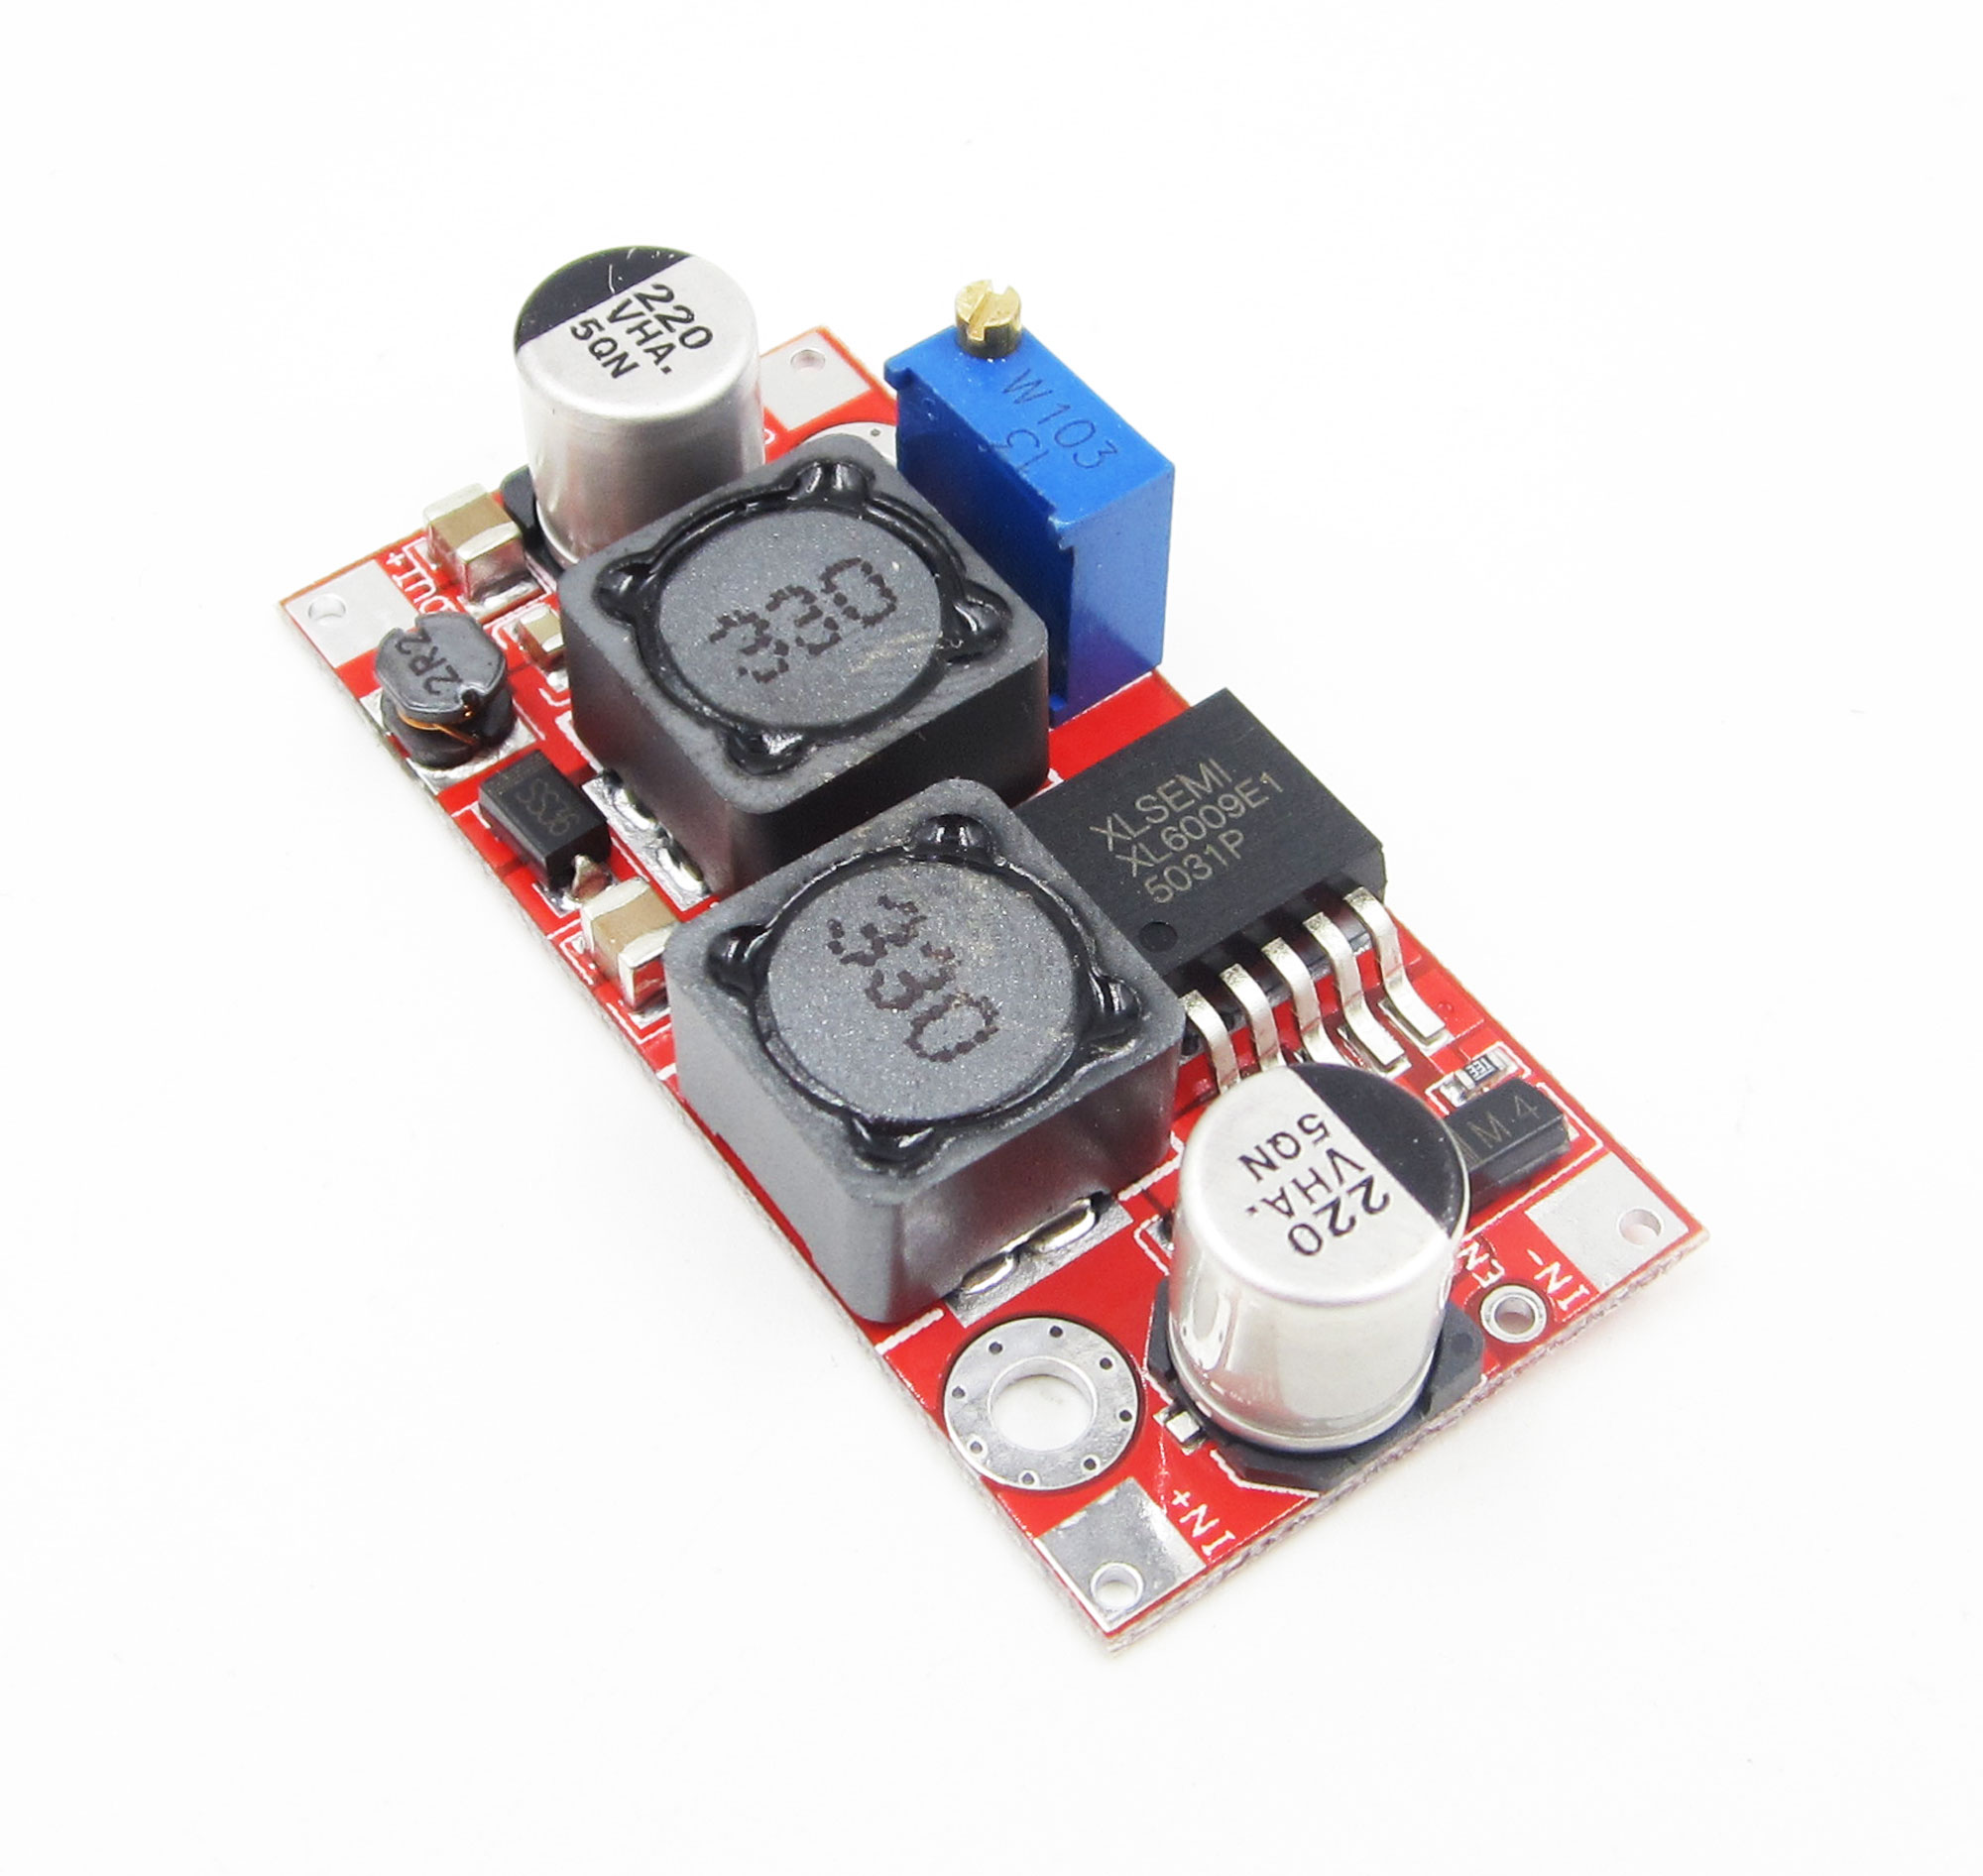 Dc Boo Buck Adjuable Ep Up Down Converter Xl6009 Module Solar Switching Regulators Using Lm 2575 And 2577 Voltage In Home Automation Modules From Consumer Electronics On Alibaba